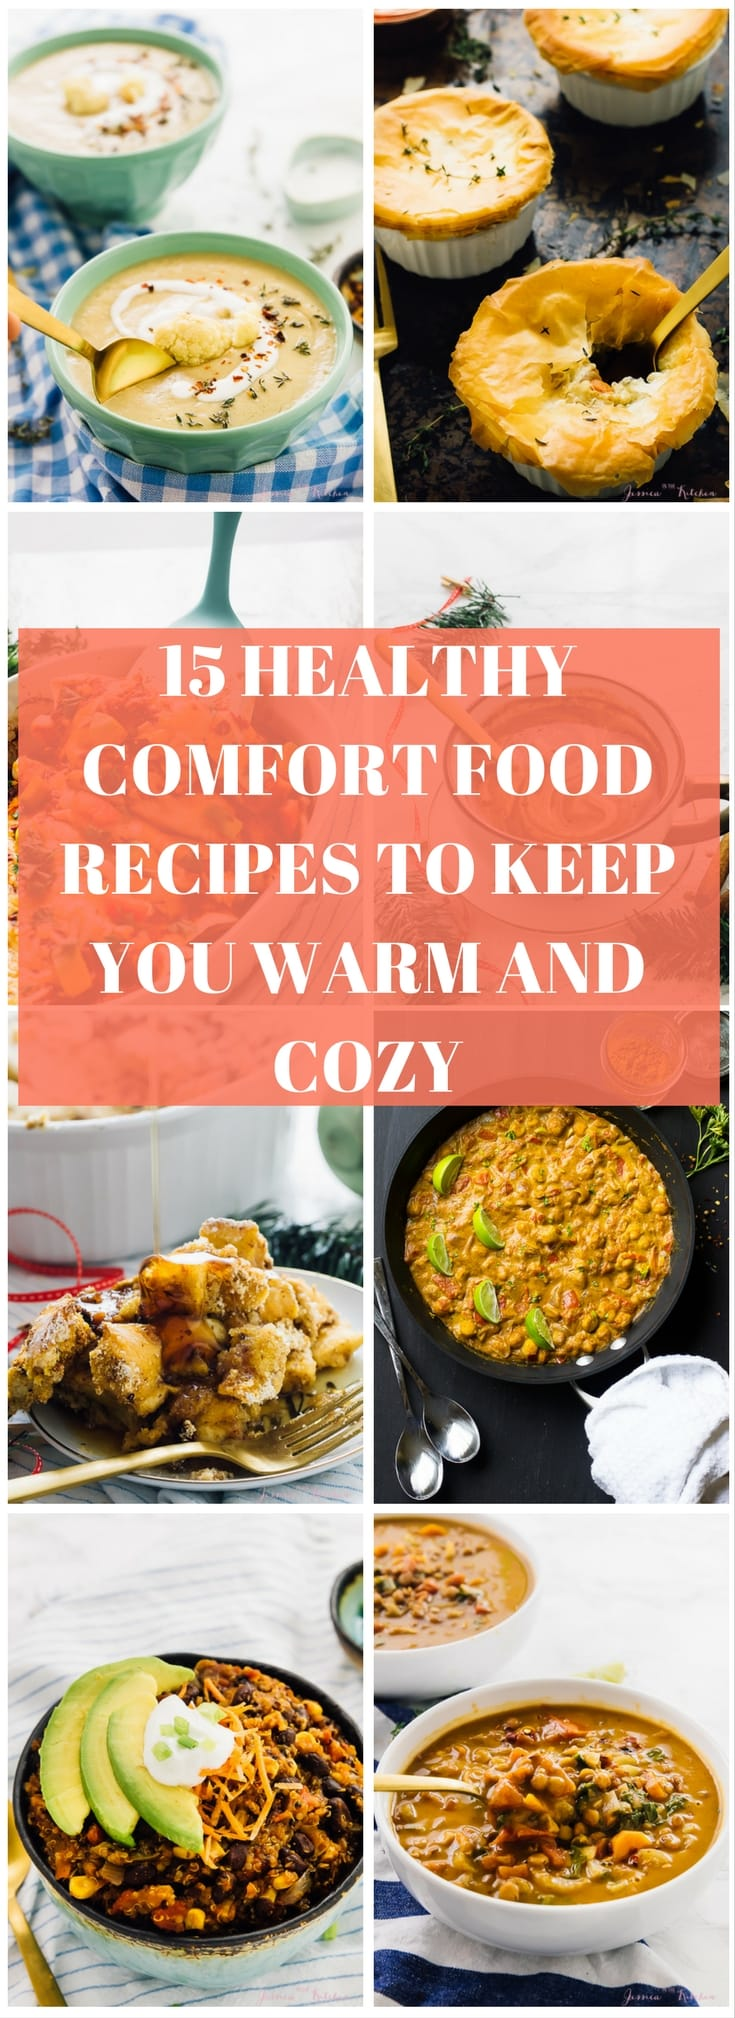 These 15 Healthy Comfort Food Recipes will Keep You Warm and Cozy! All recipes are made with whole food ingredients, no refined ingredients, and all taste divine!